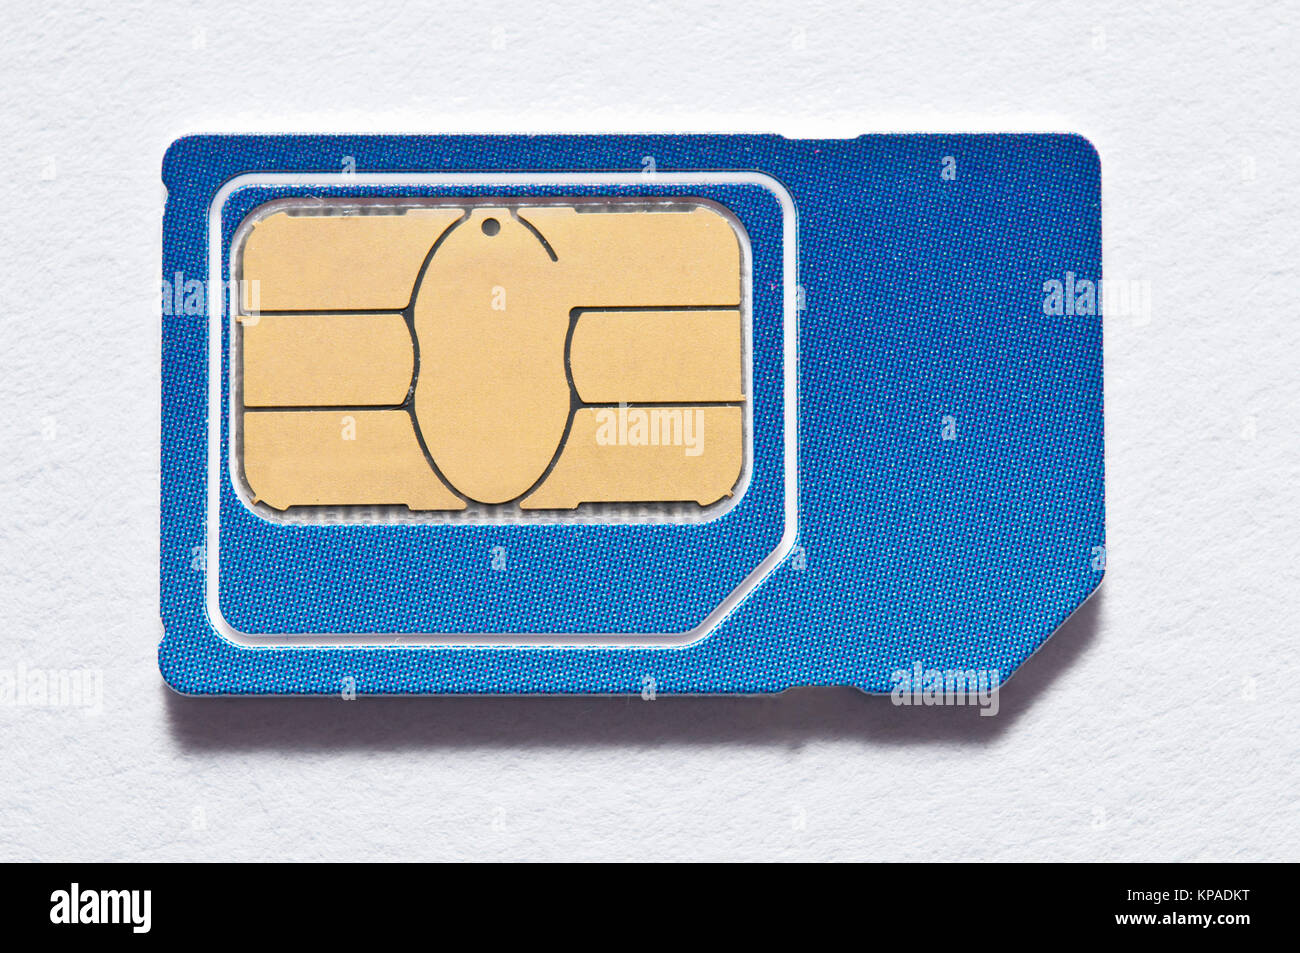 SIM card for mobile phone isolated - Stock Image